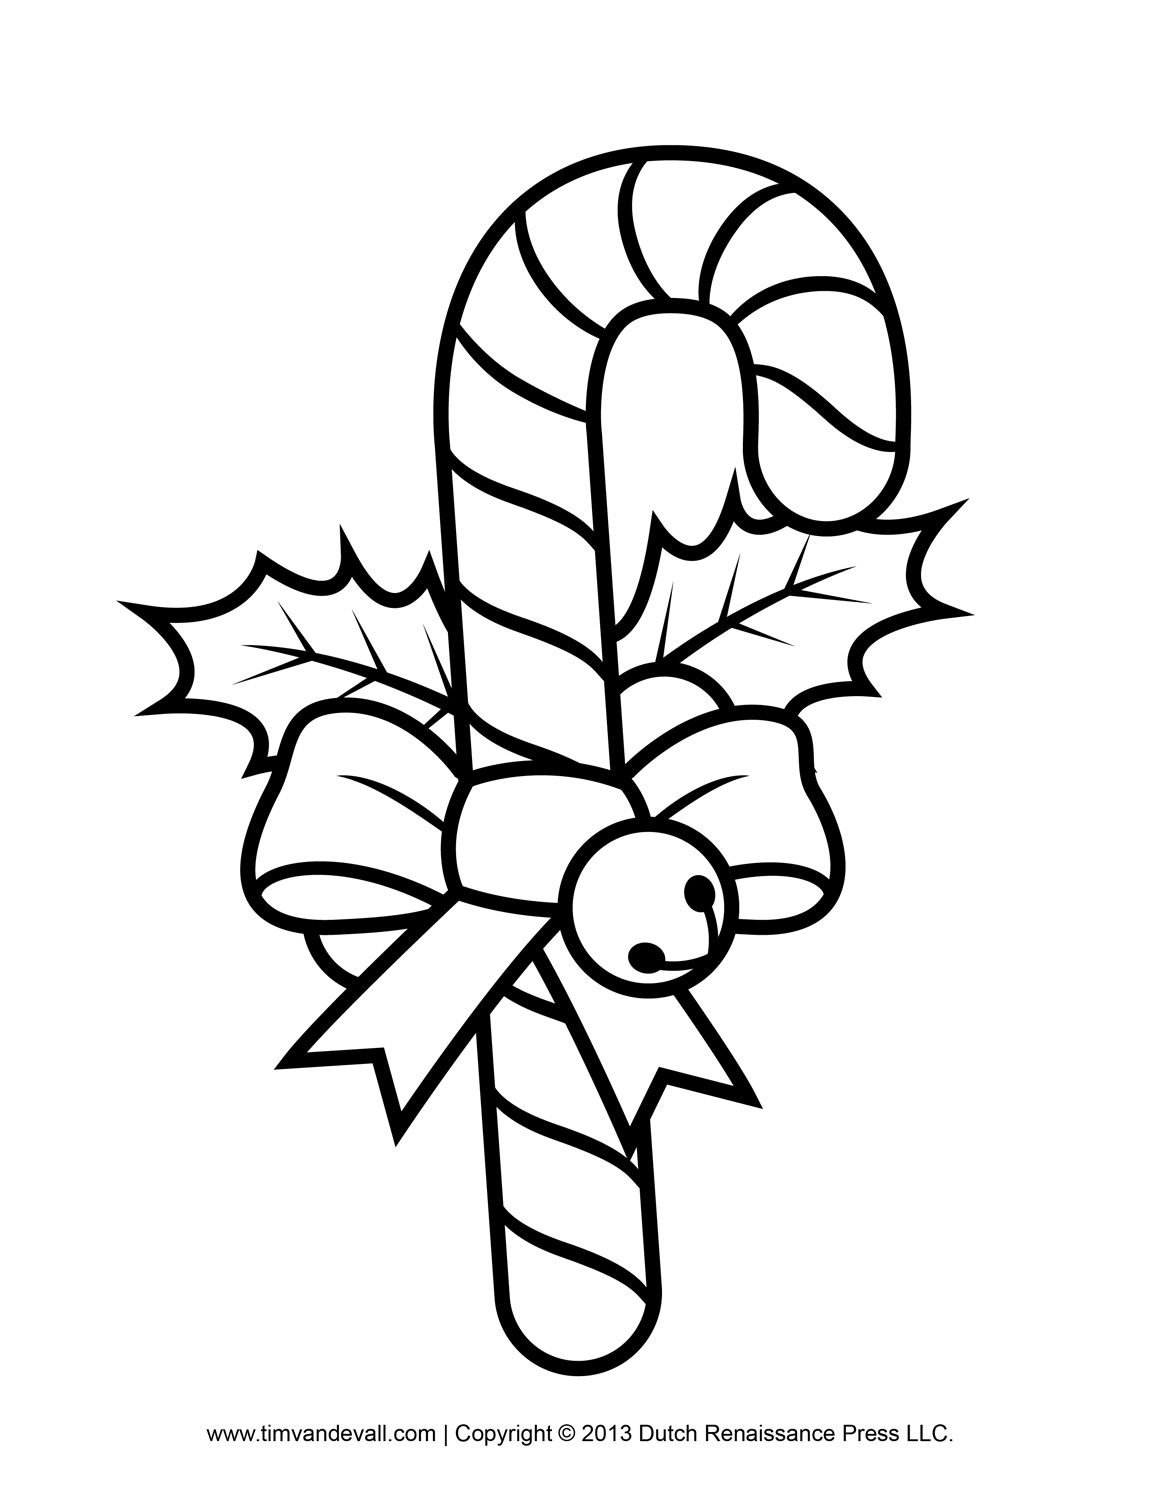 Free Candy Cane Template Printables Crafts Clipart Decorations